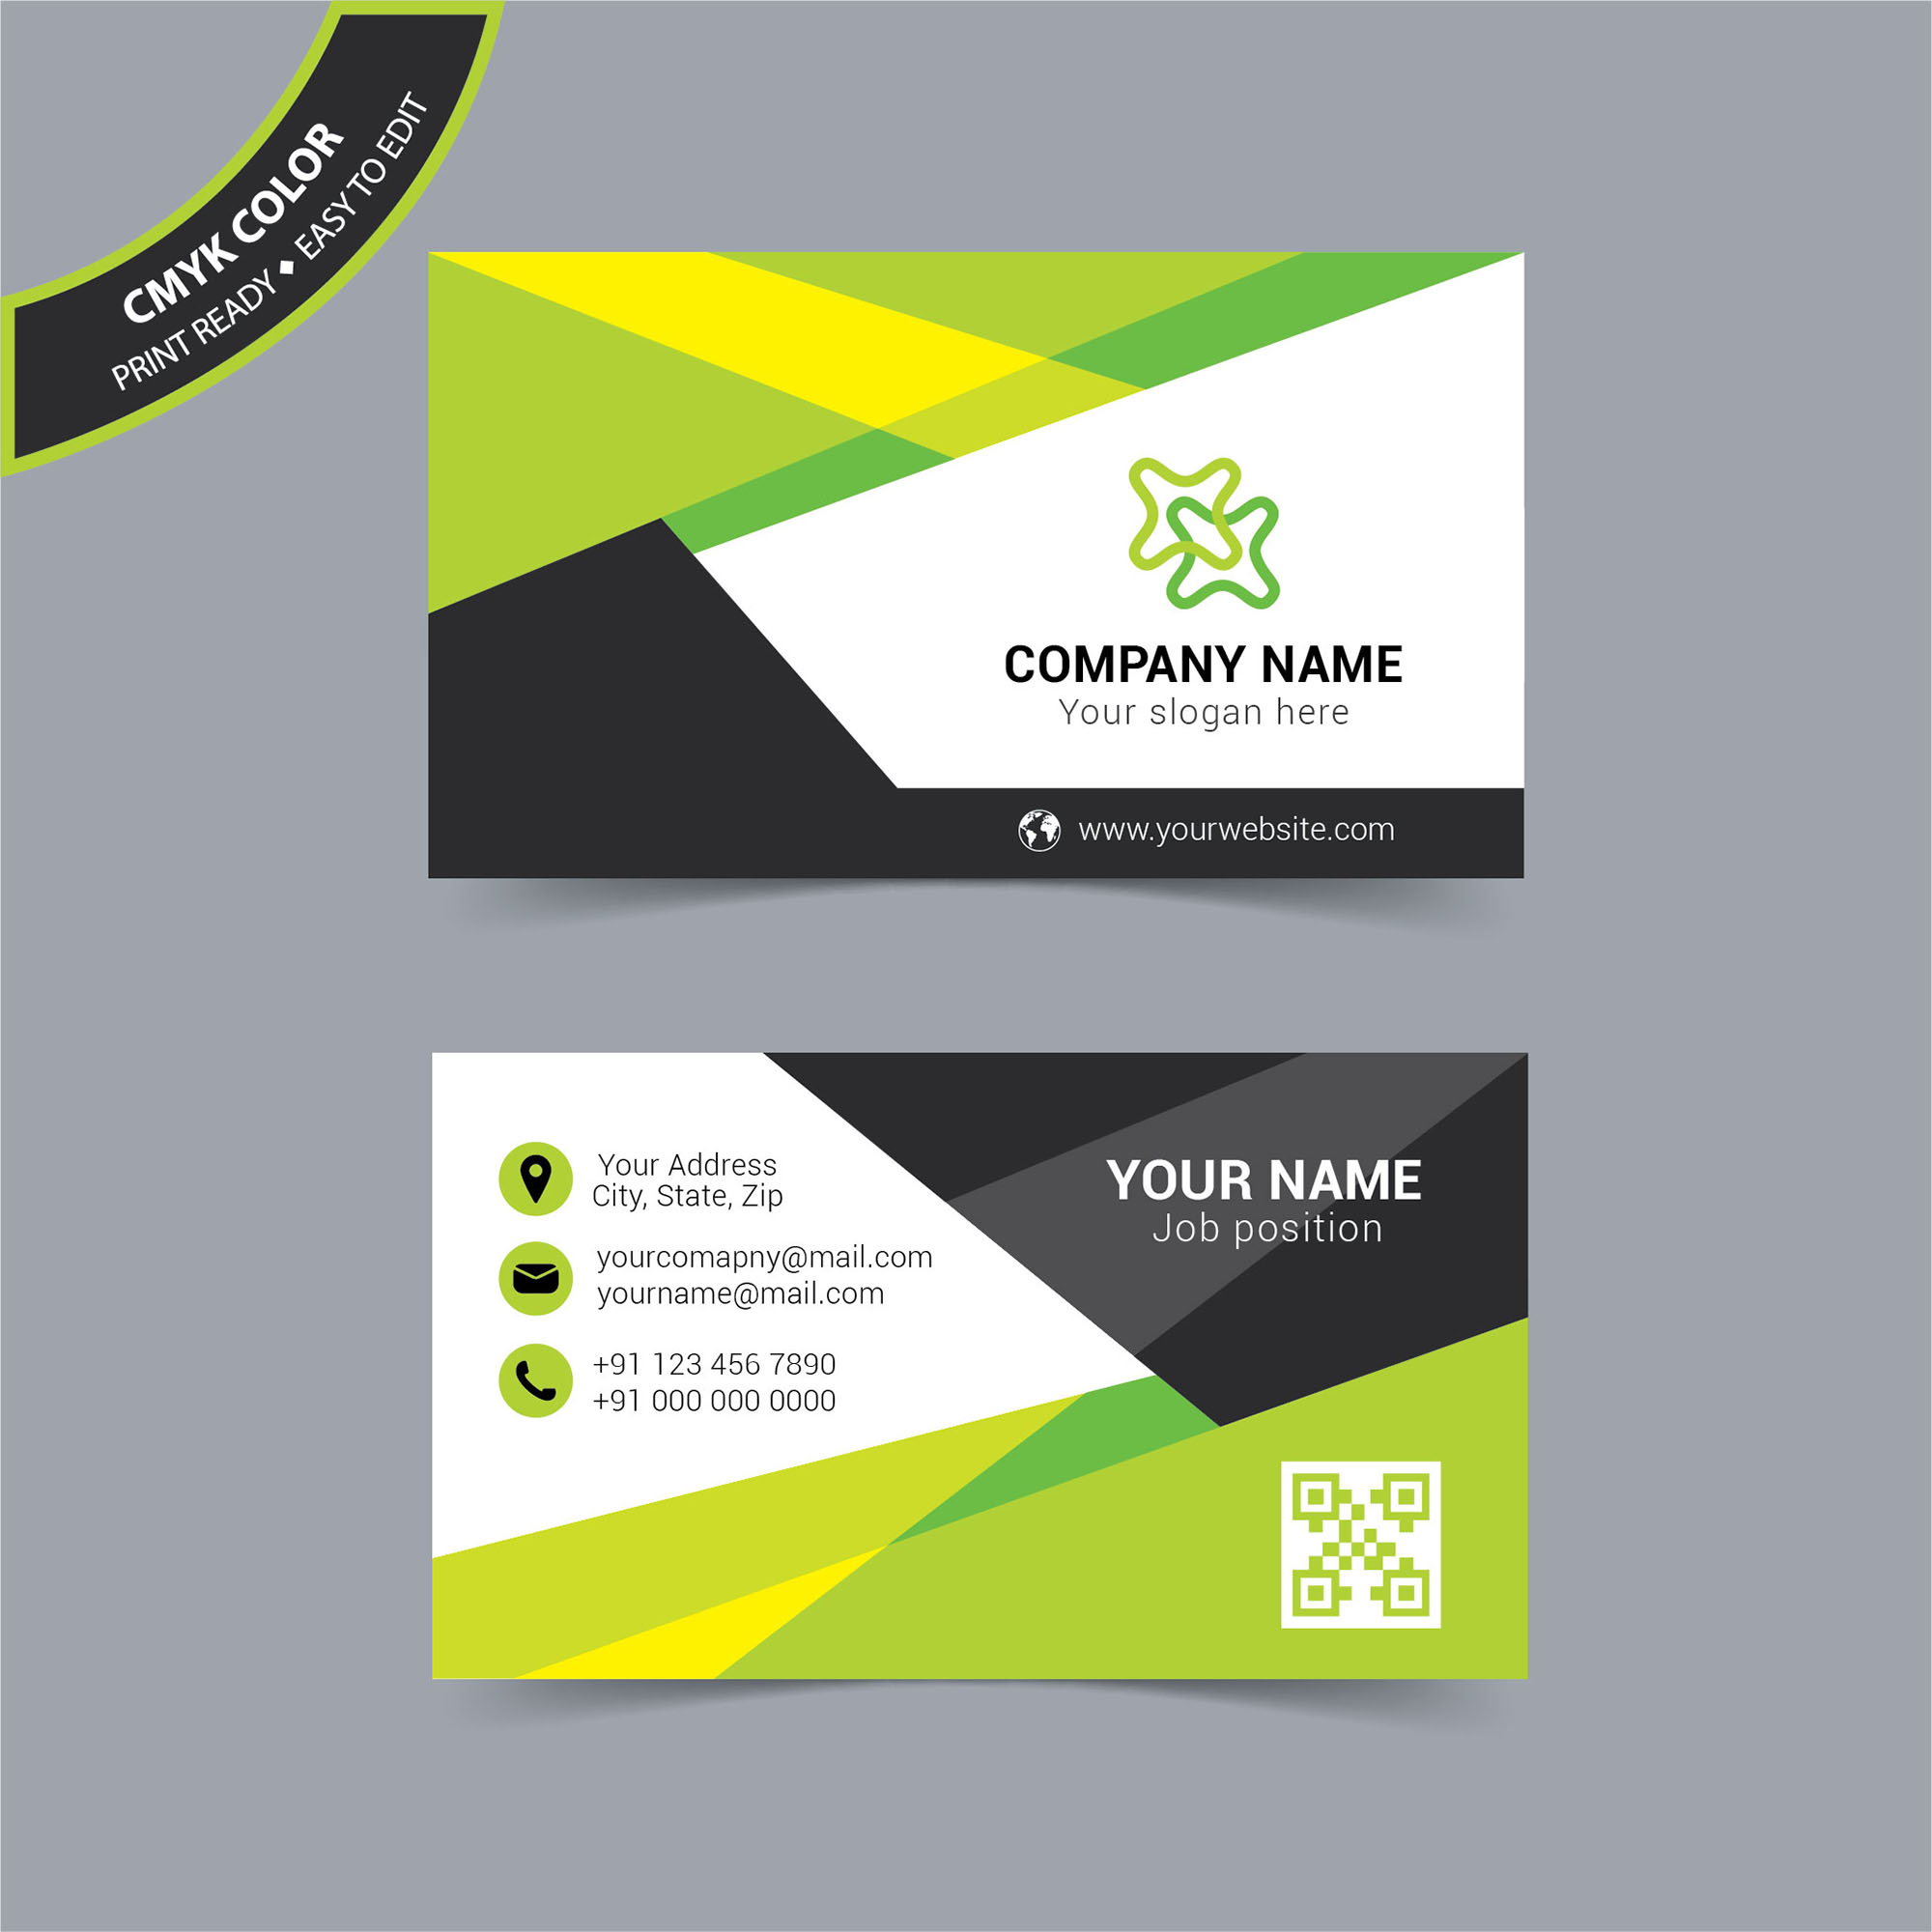 Modern colorful business card design free download wisxi business card business cards business card design business card template design templates wajeb